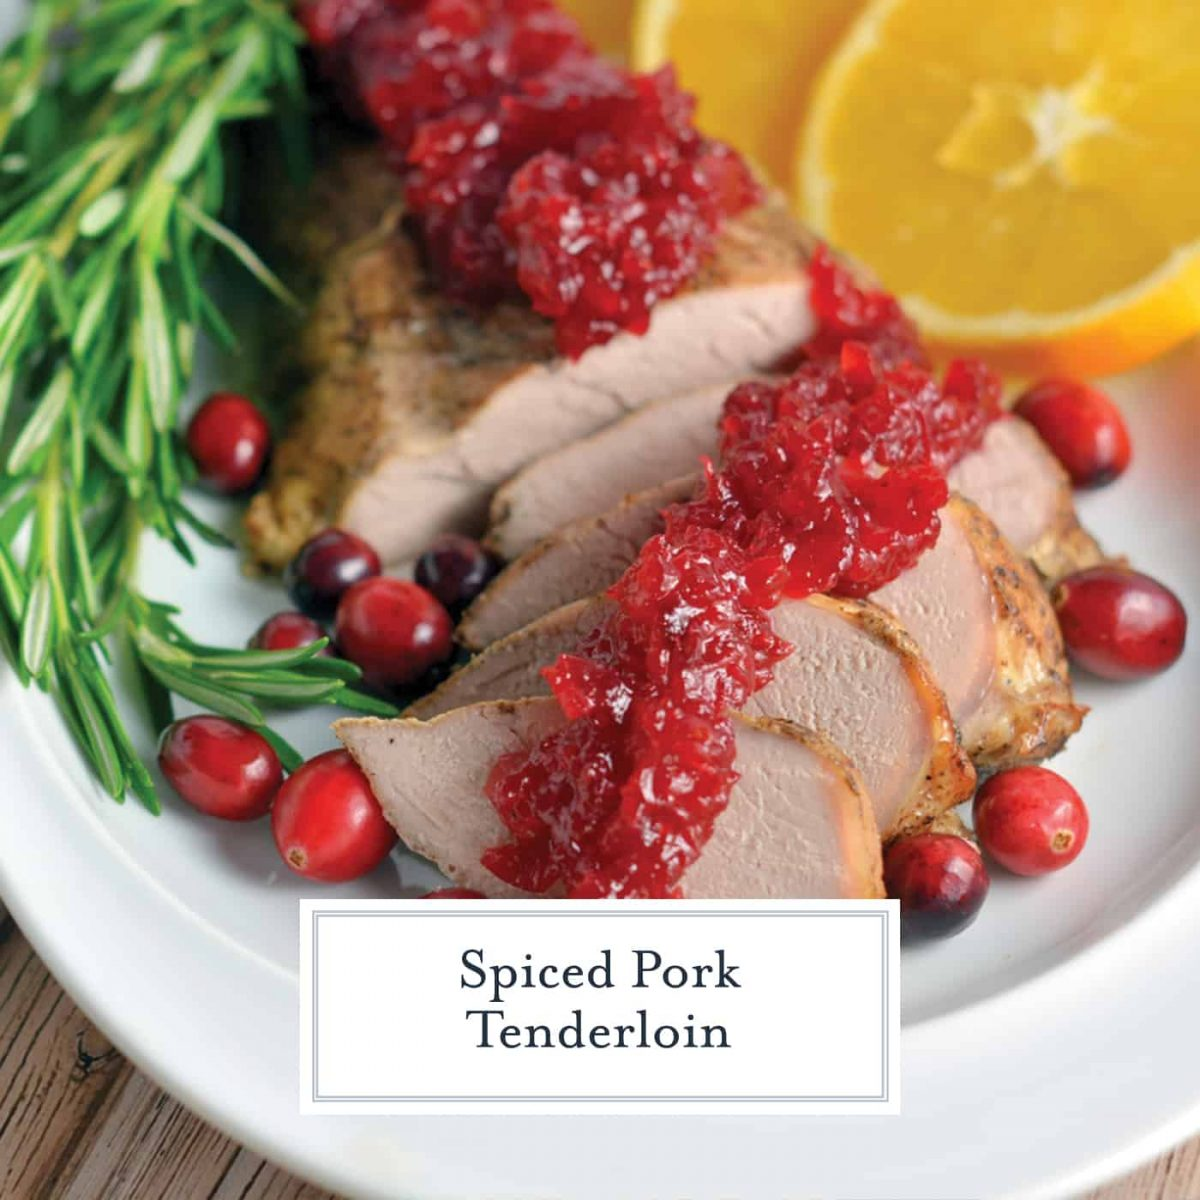 Spiced Pork Tenderloin is tender pork rubbed with spices and roasted to perfection. The amazing aroma coming from the oven is just a holiday bonus! #porktenderloin #holidayentree www.savoryexperiments.com